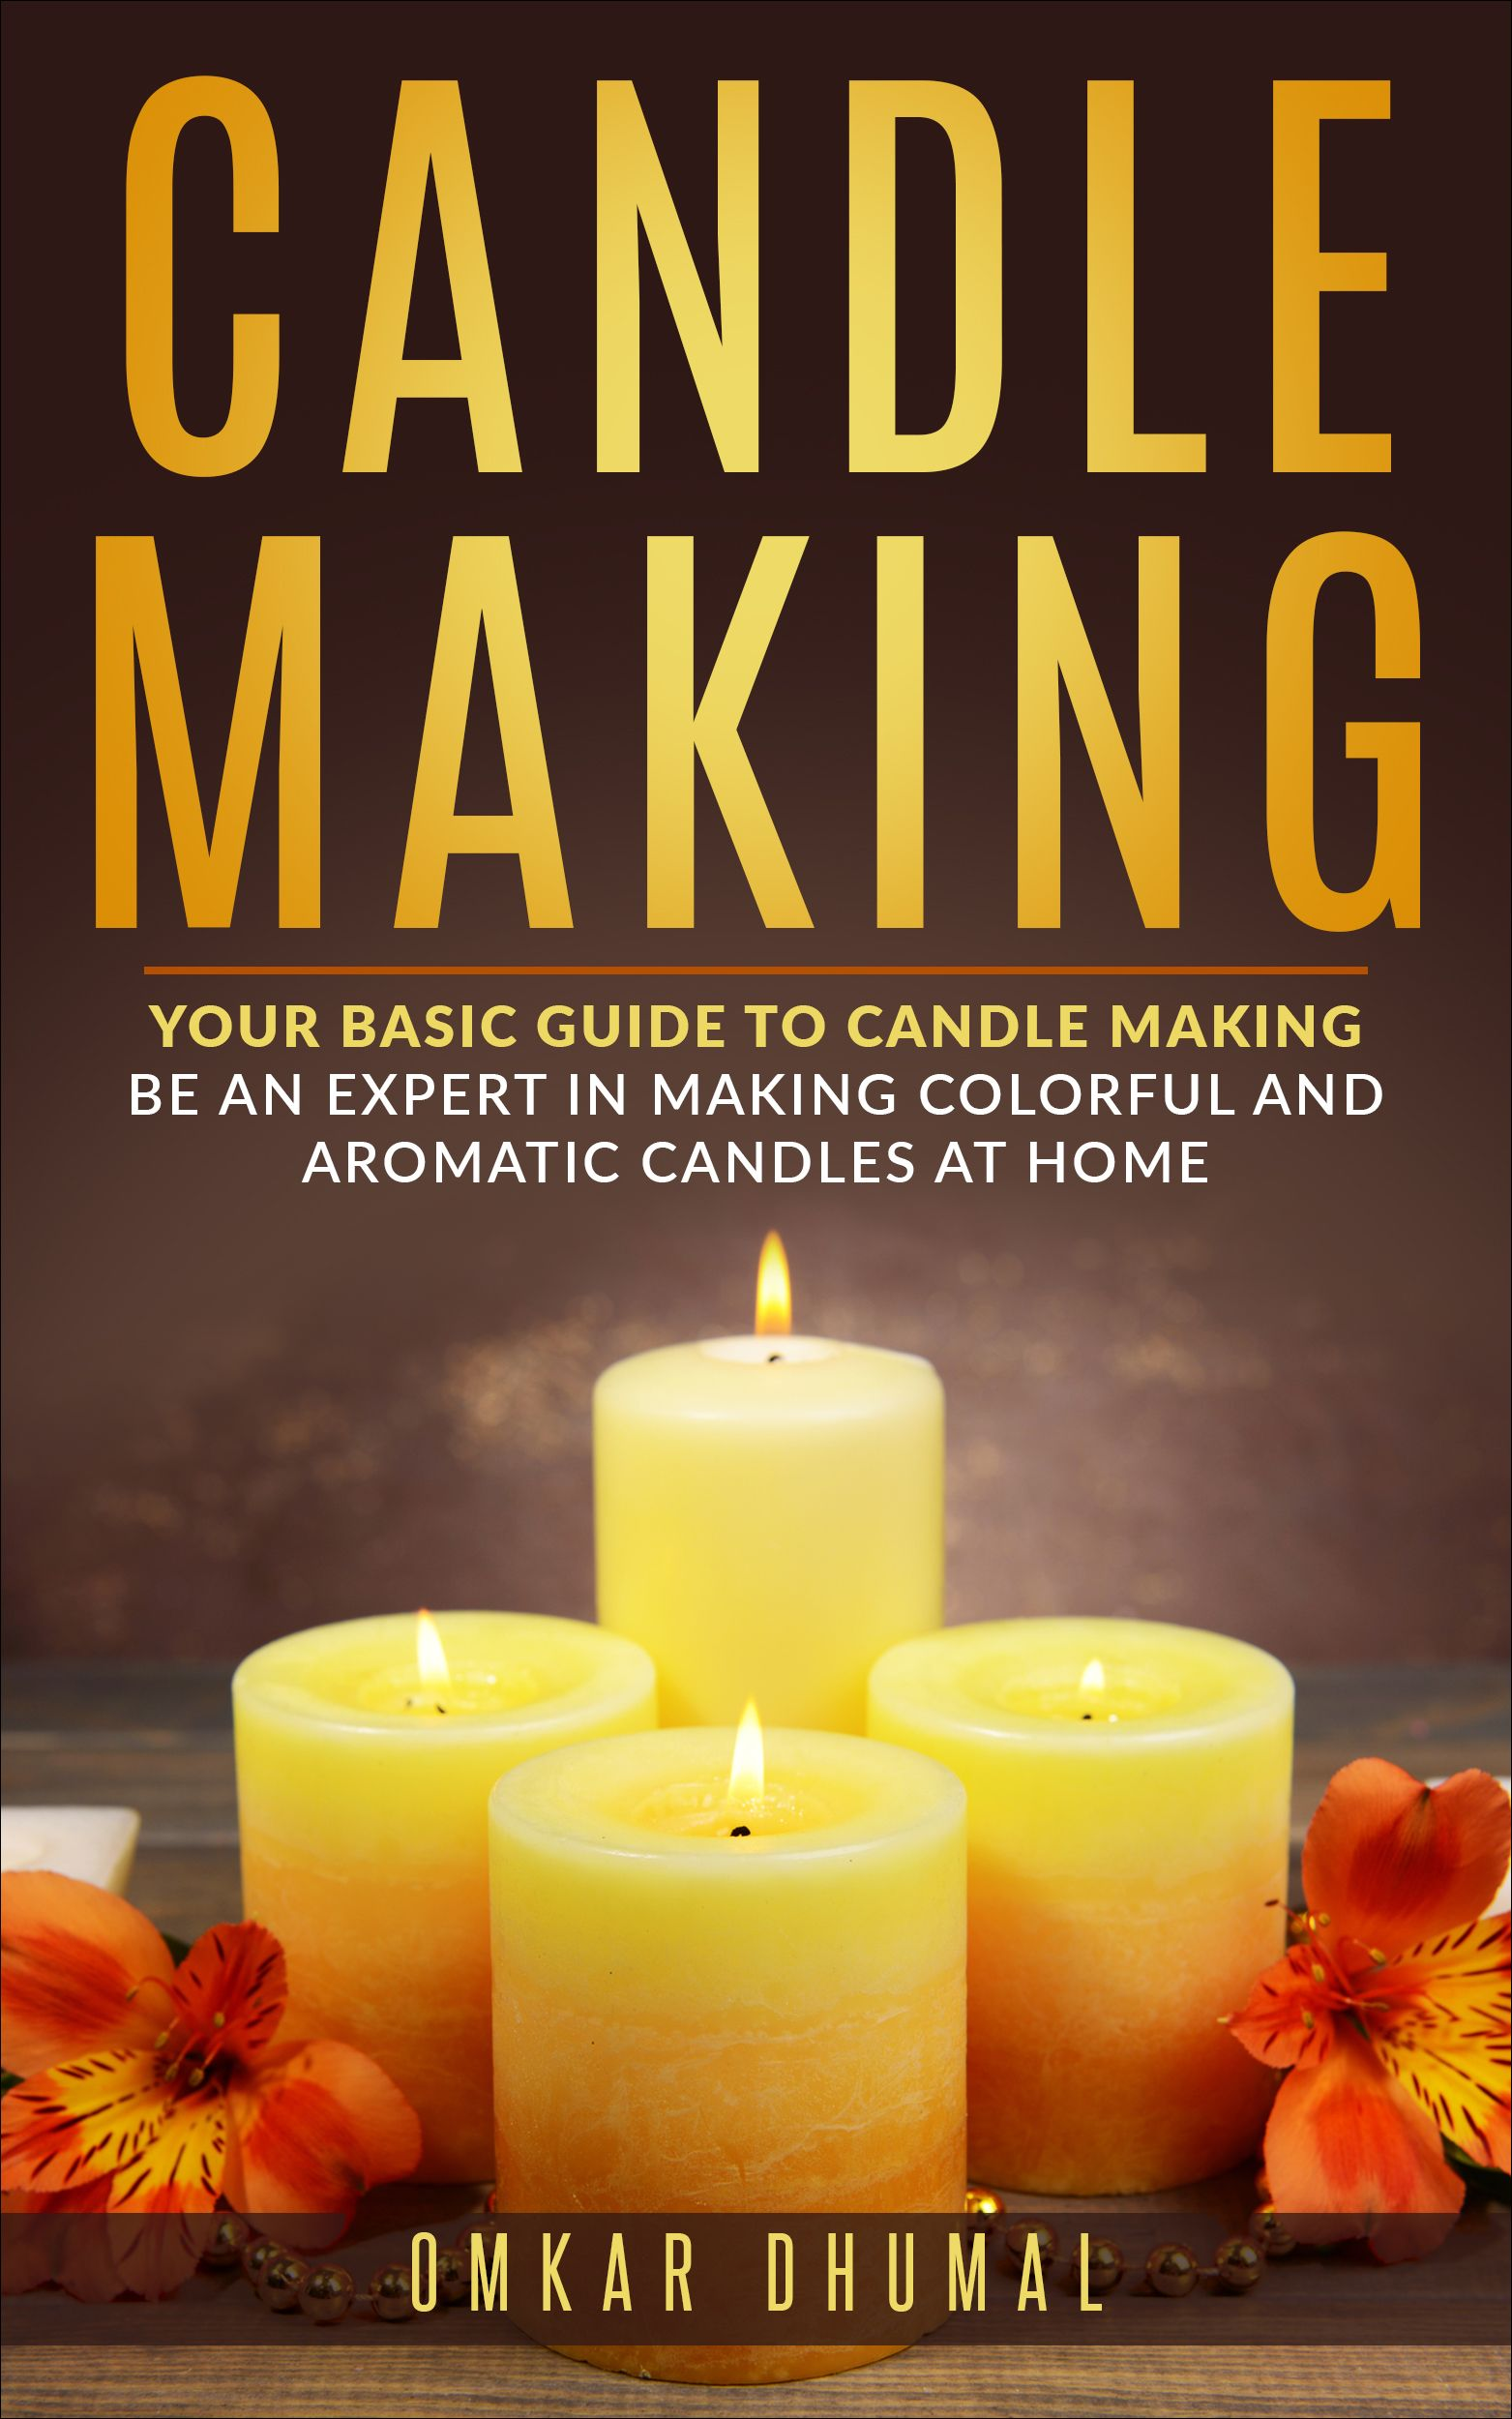 Candle making is fun, economical, and easier than ever